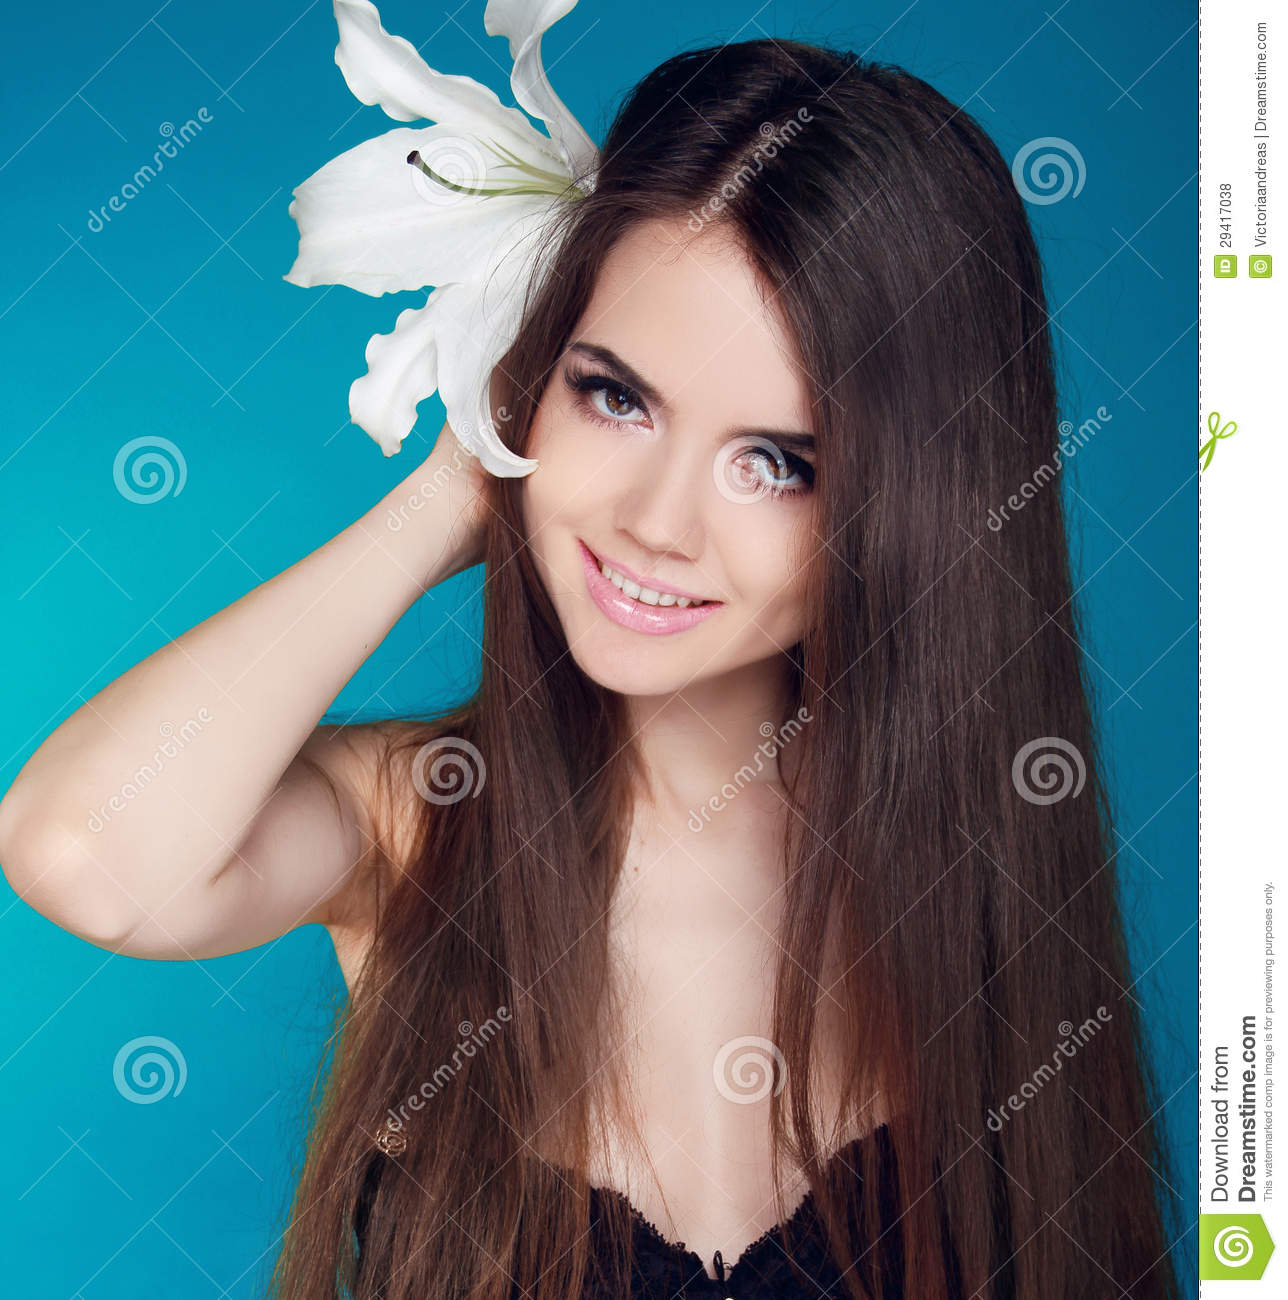 beautiful woman with long brown hair and white flower attractiv stock photo image 29417038. Black Bedroom Furniture Sets. Home Design Ideas